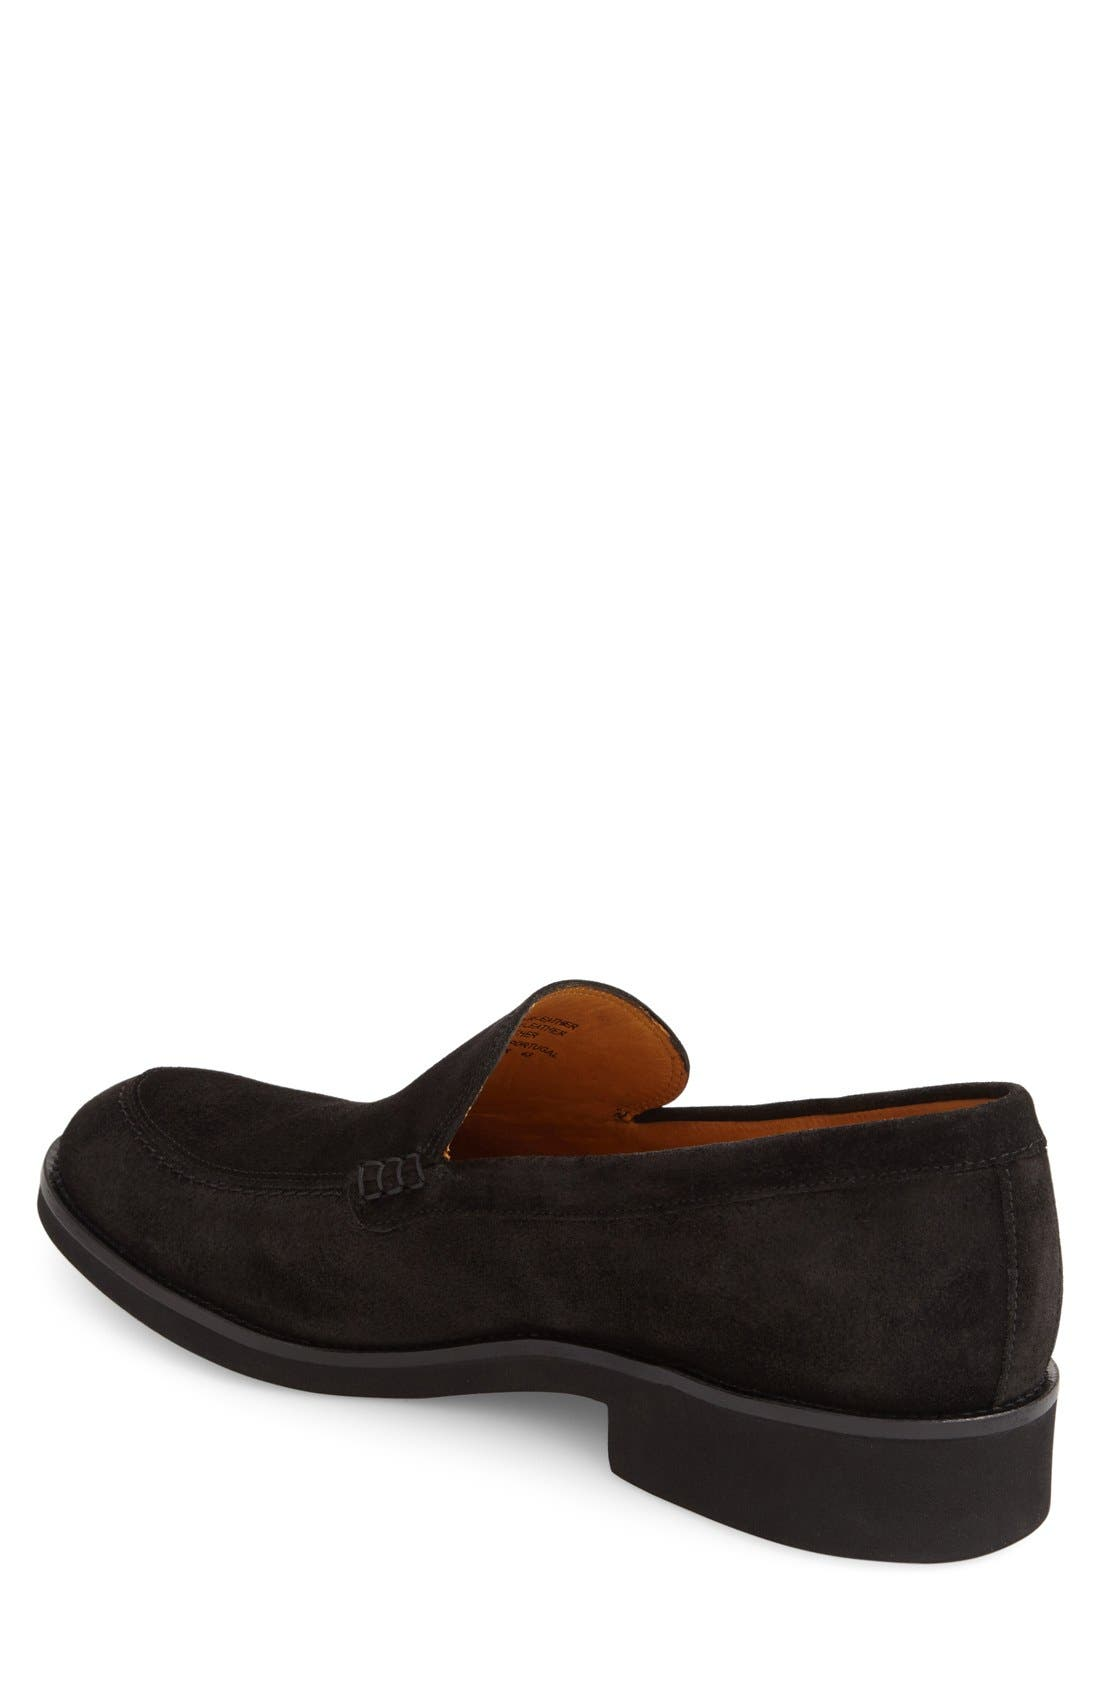 'Arleigh' Loafer,                             Alternate thumbnail 3, color,                             Black Suede